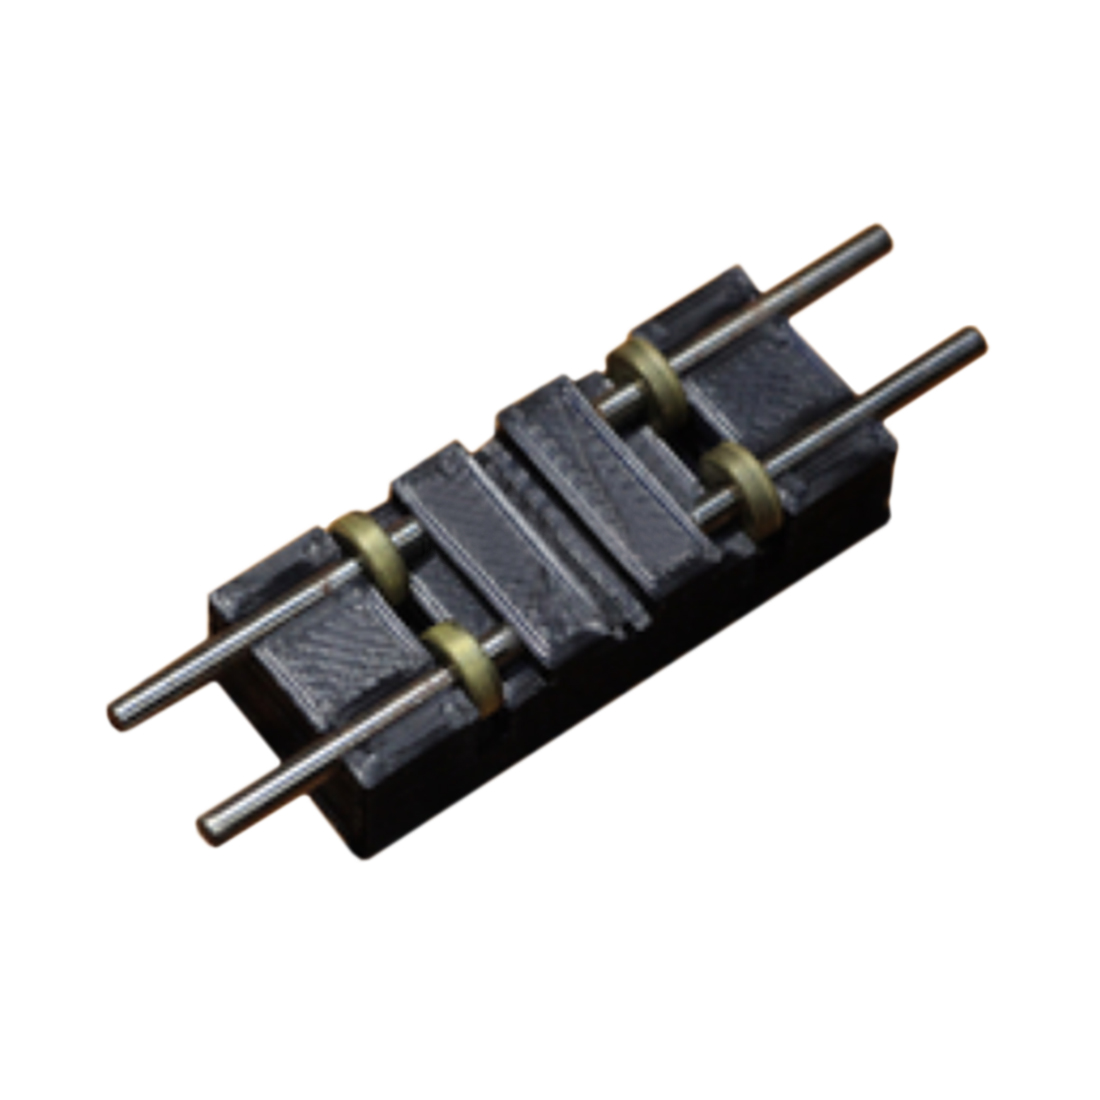 1:60/1:87 Model Train N Scale DIY Accessories Treadmill Track Single Module For N Scale Model Of Most Brands In The Market